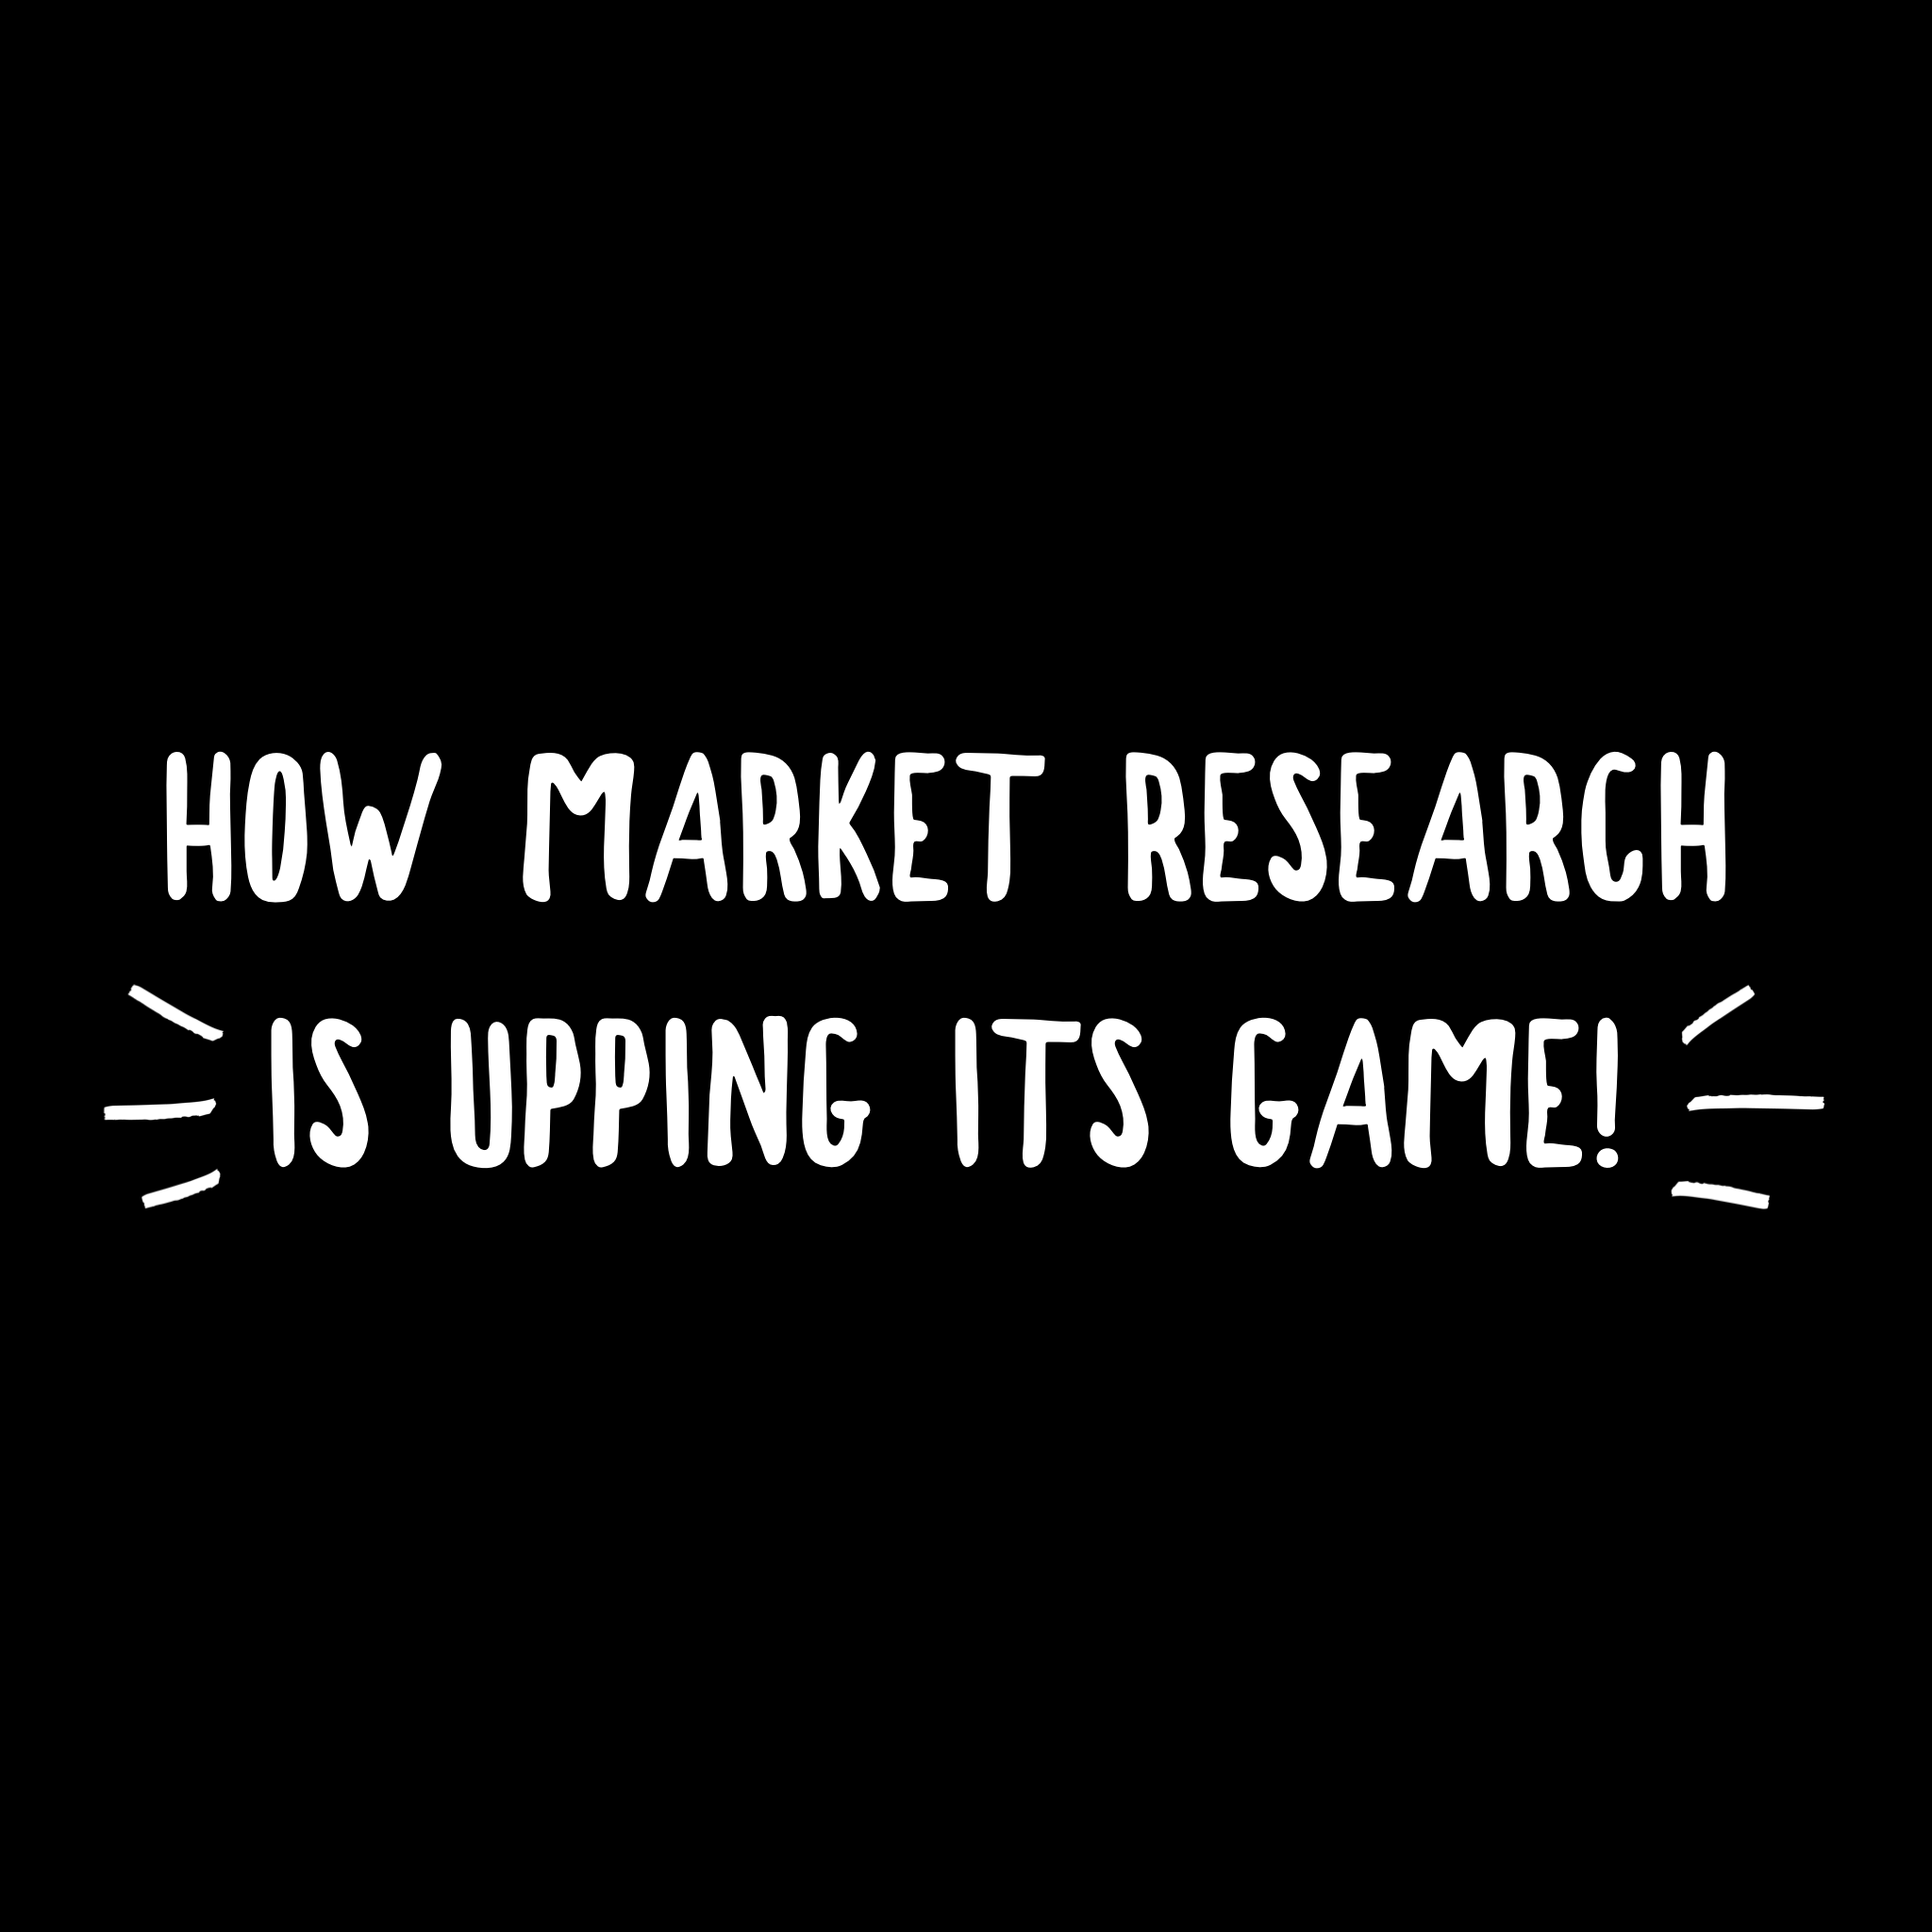 How Market Research Is Upping Its Game